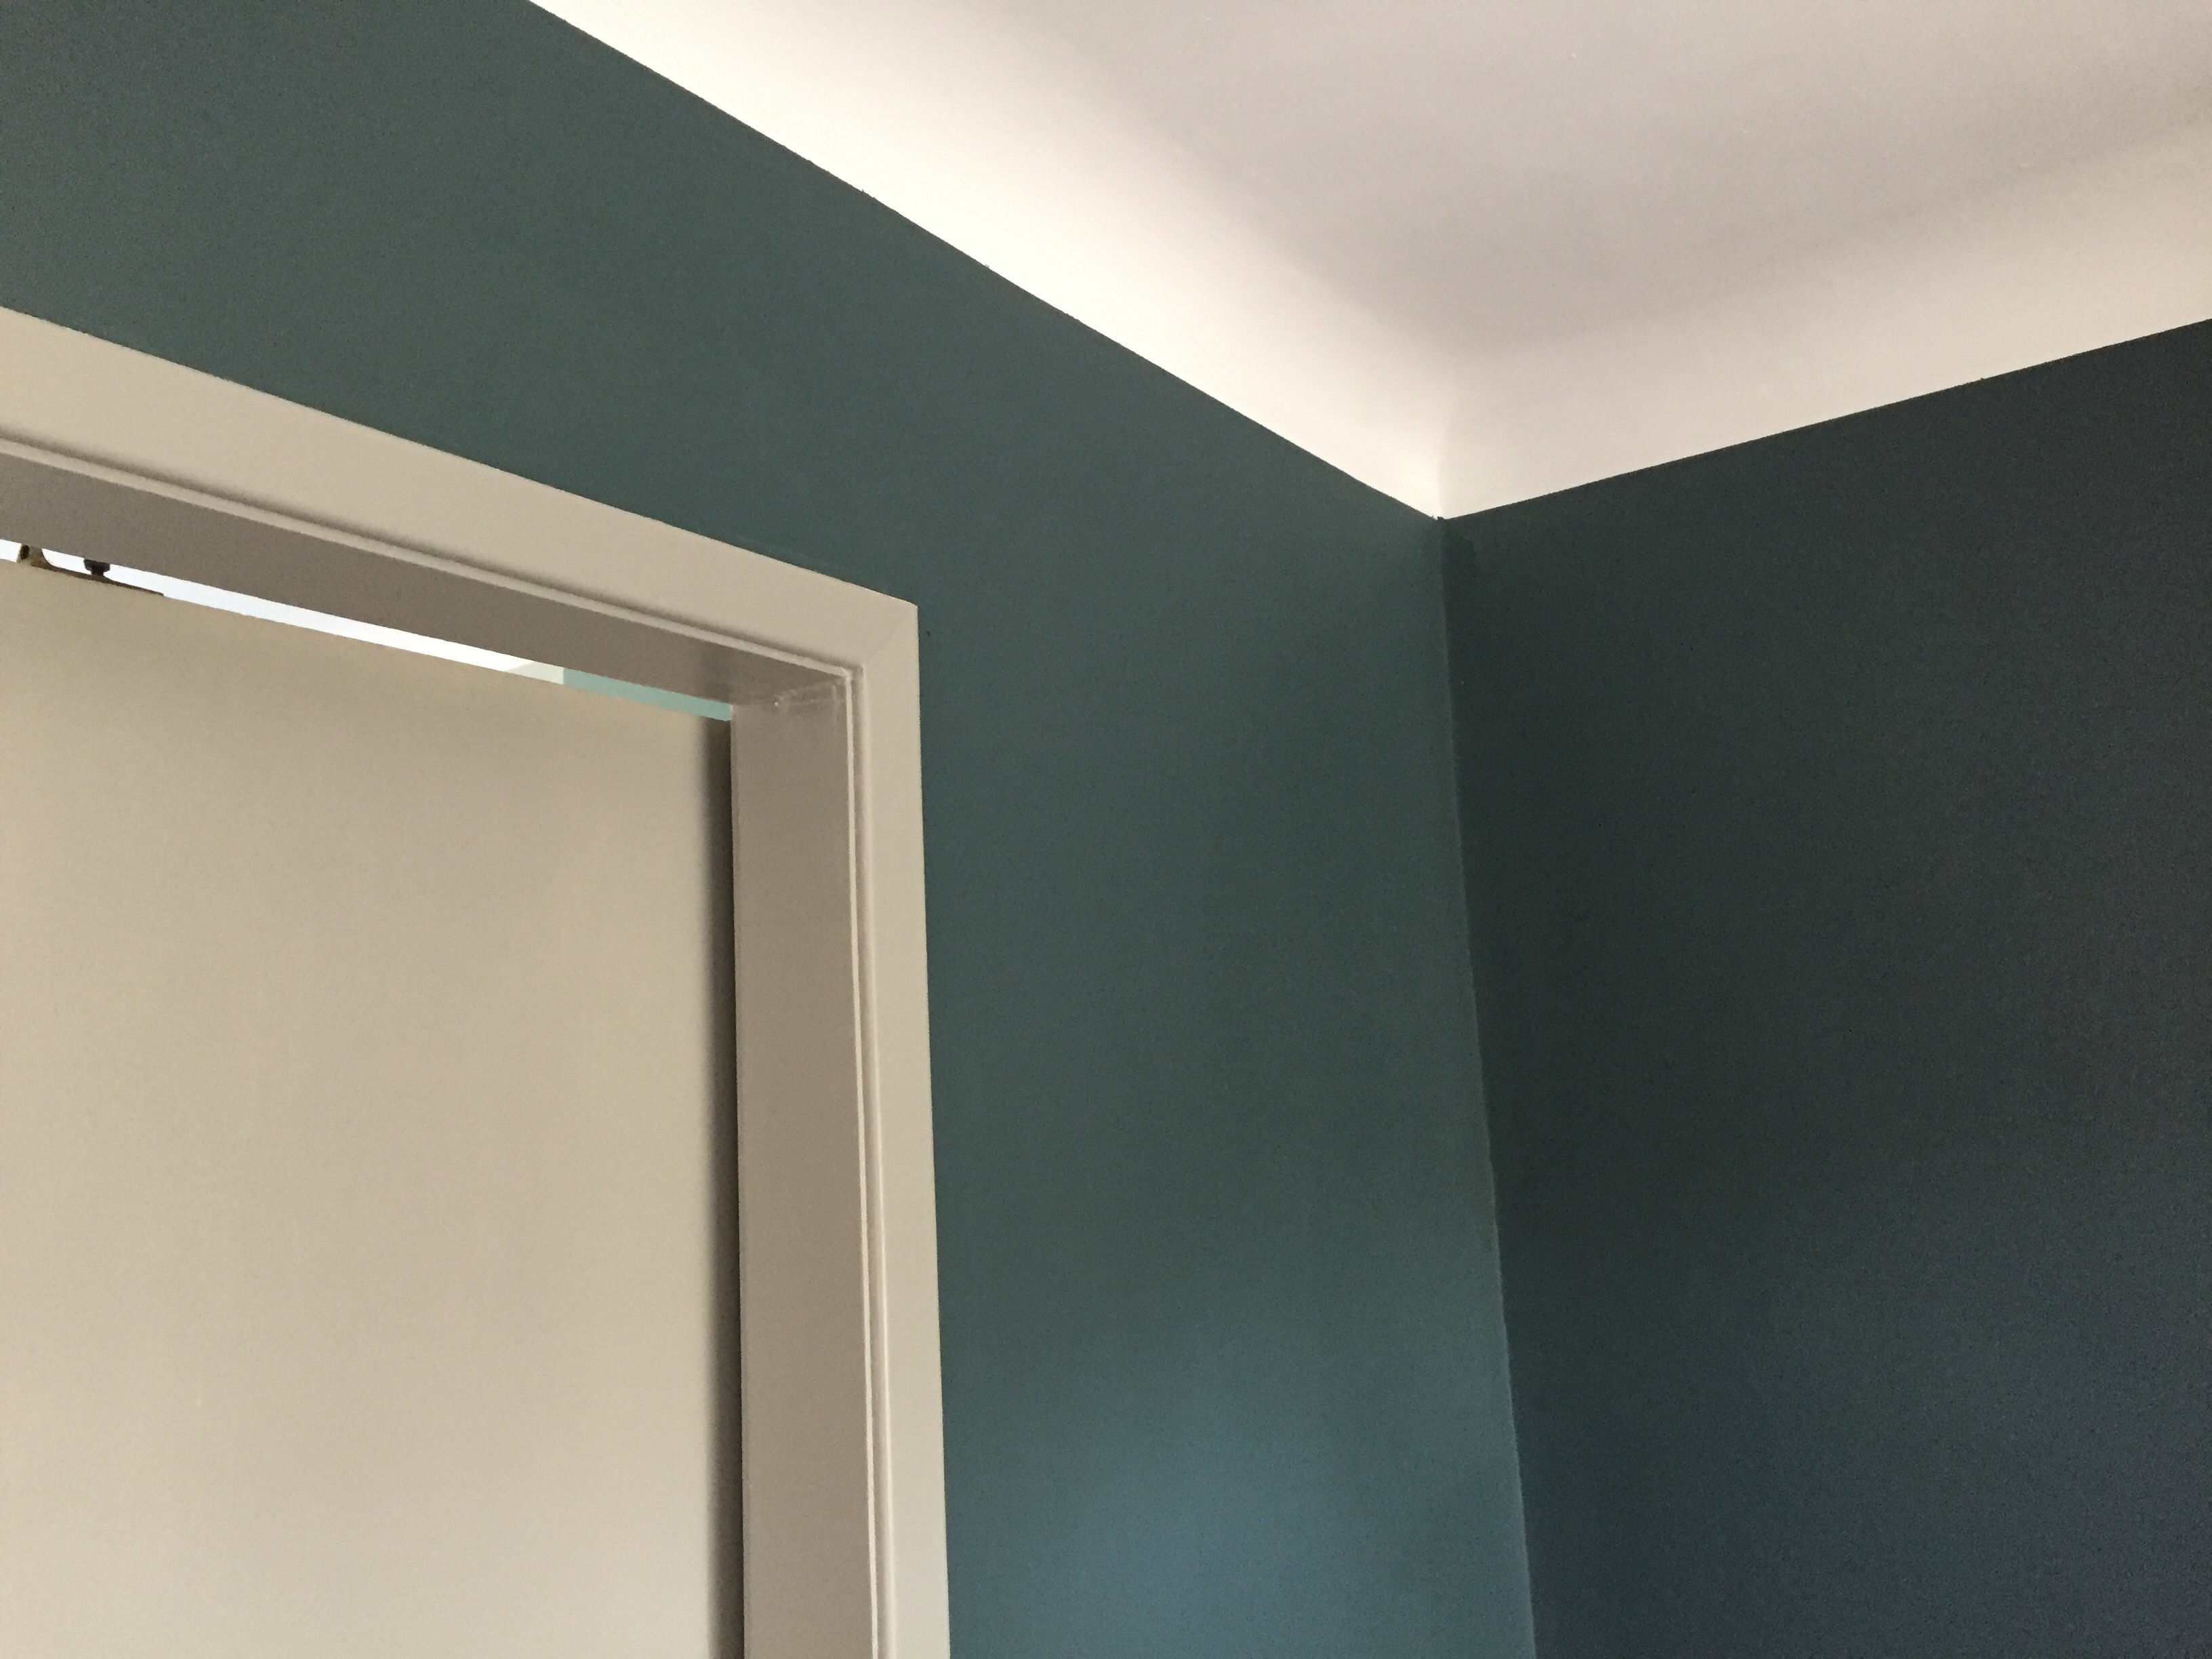 How To Paint Edges Between Wall And Ceiling Mail Cabinet